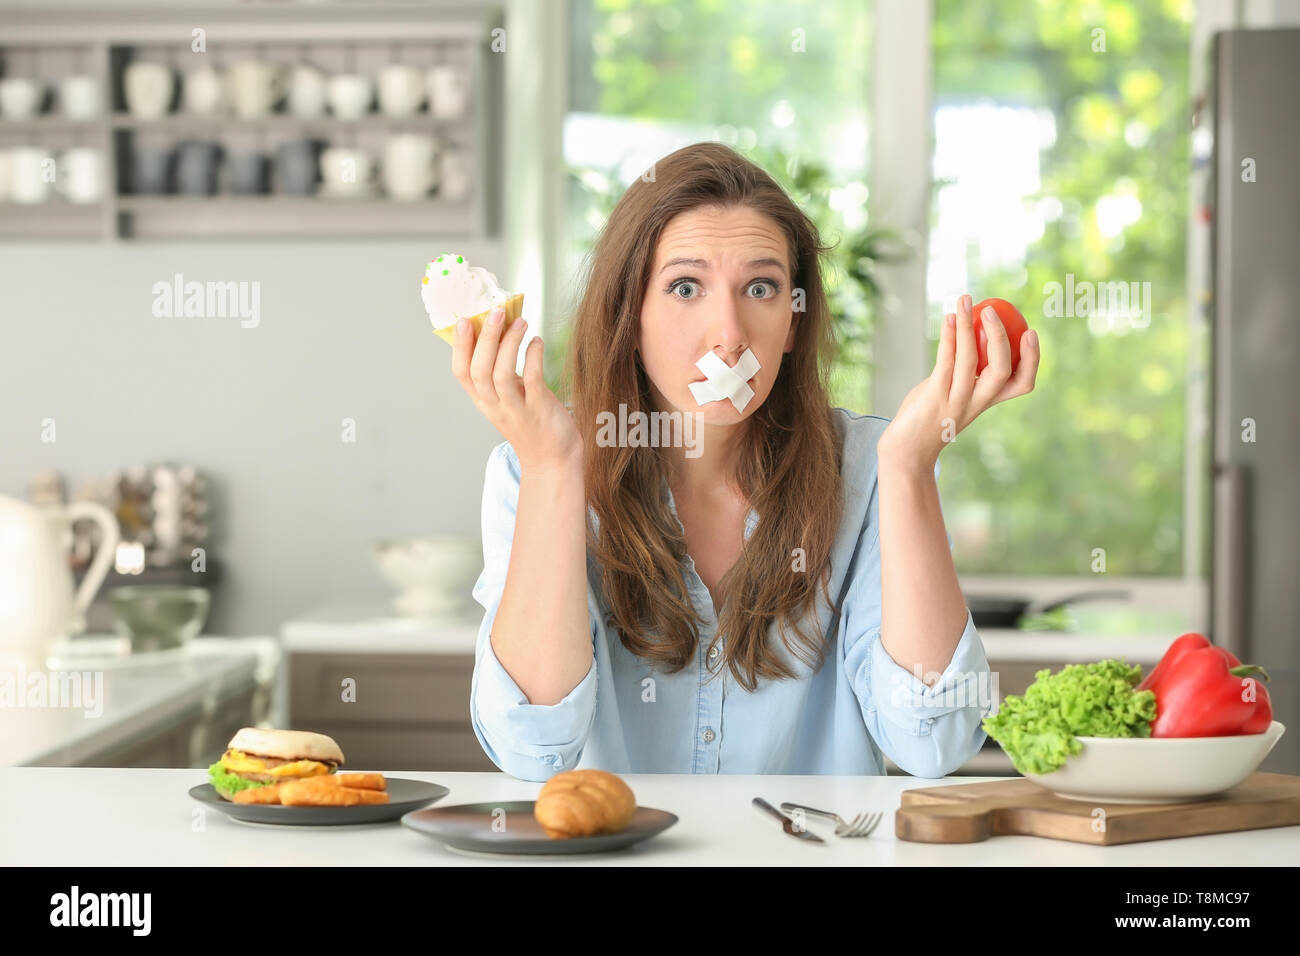 Stressful woman with taped mouth and different products in kitchen. Choice between healthy and unhealthy food Stock Photo